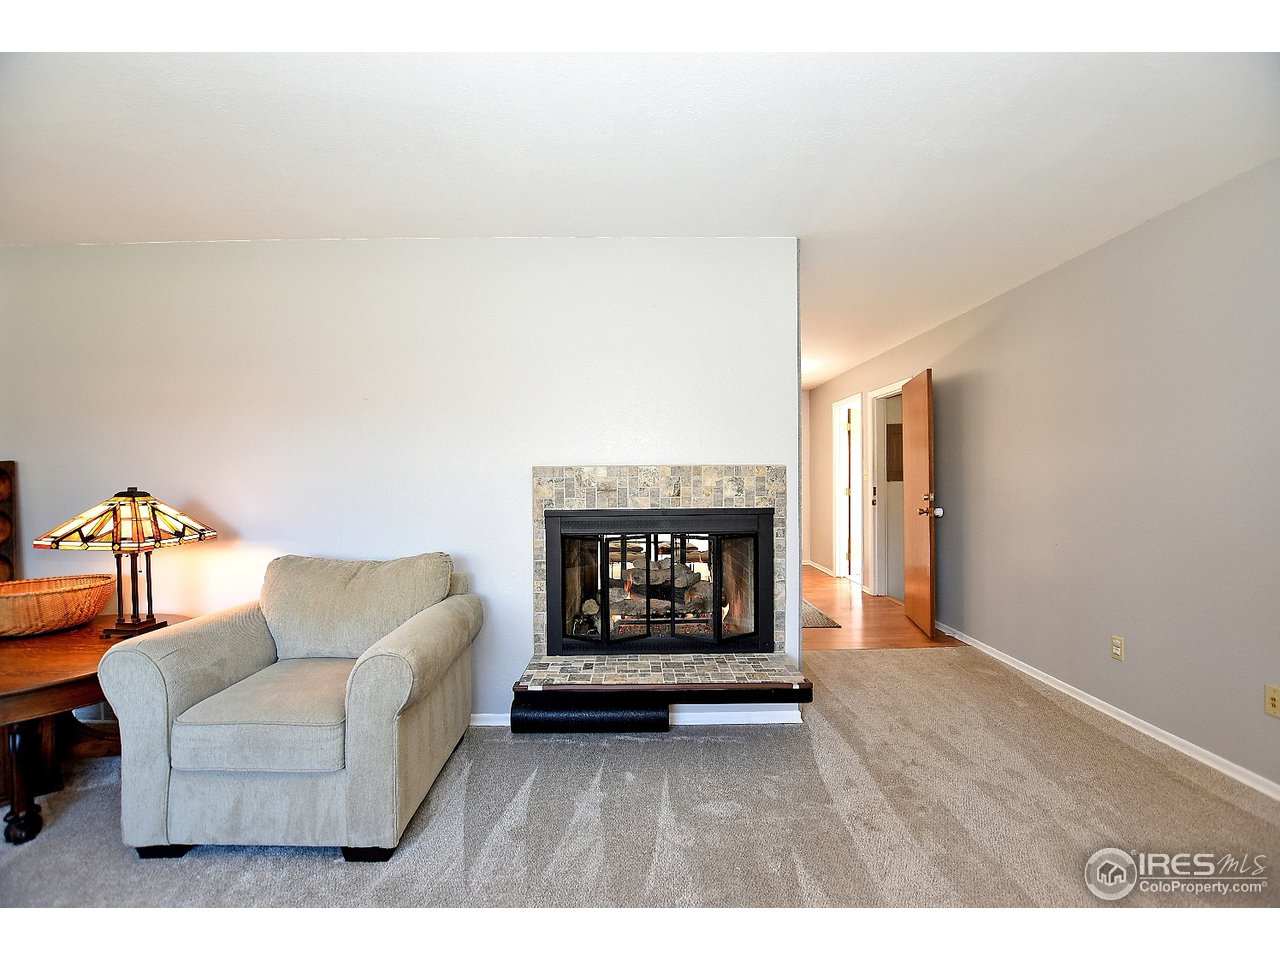 See through fireplace from living room to kitchen